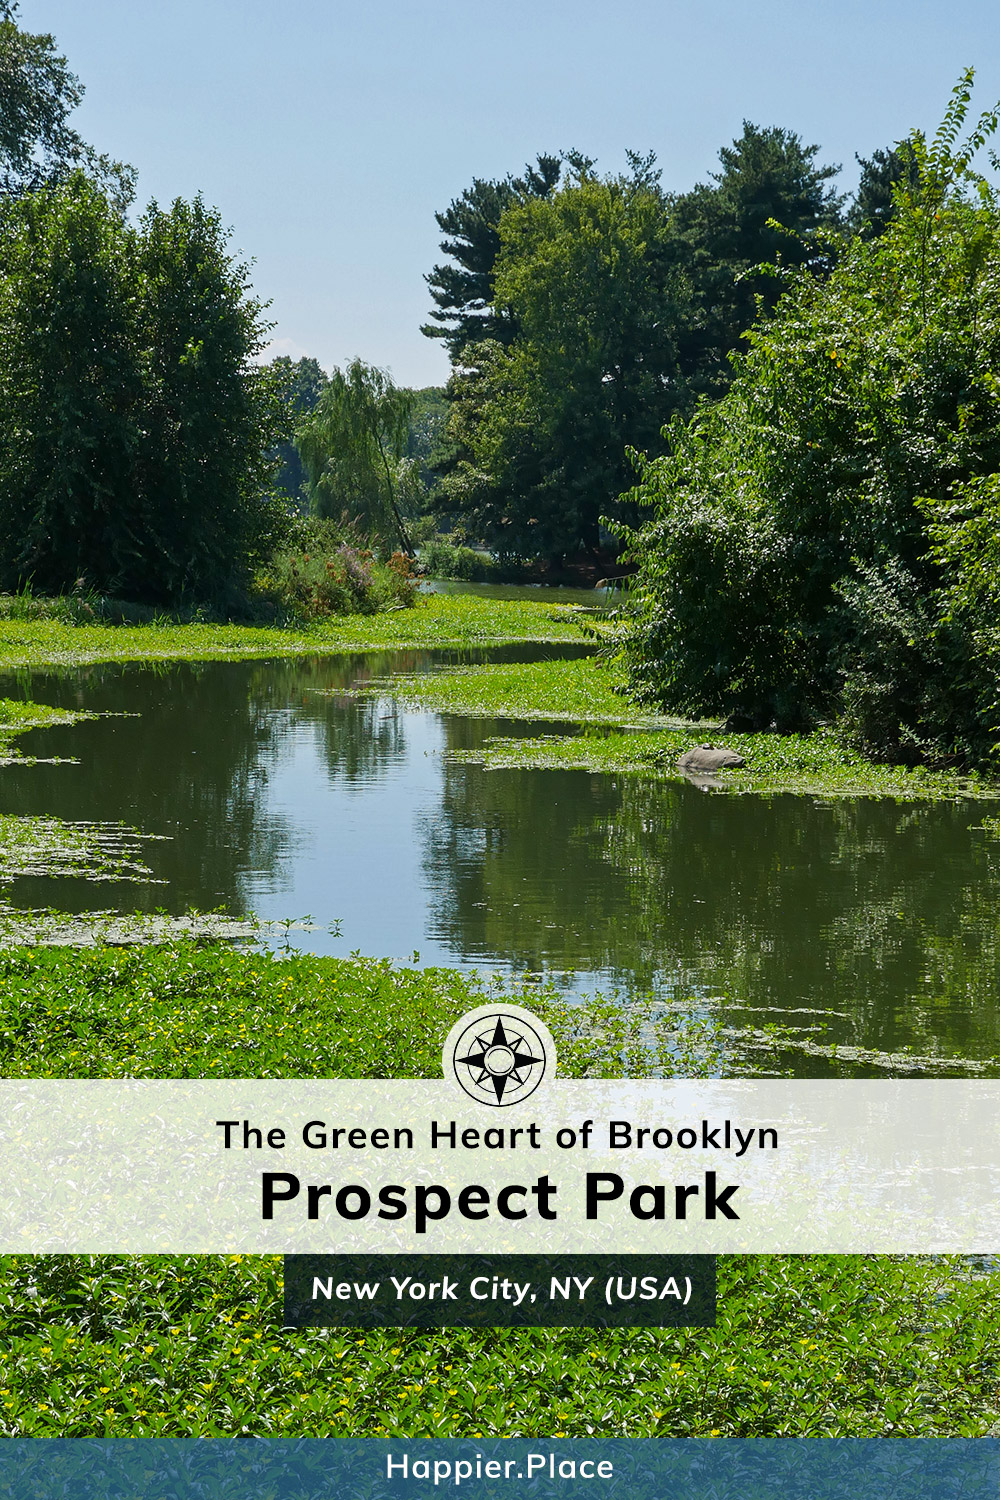 The Green Heart of Brooklyn: Prospect Park - along the Lullwater